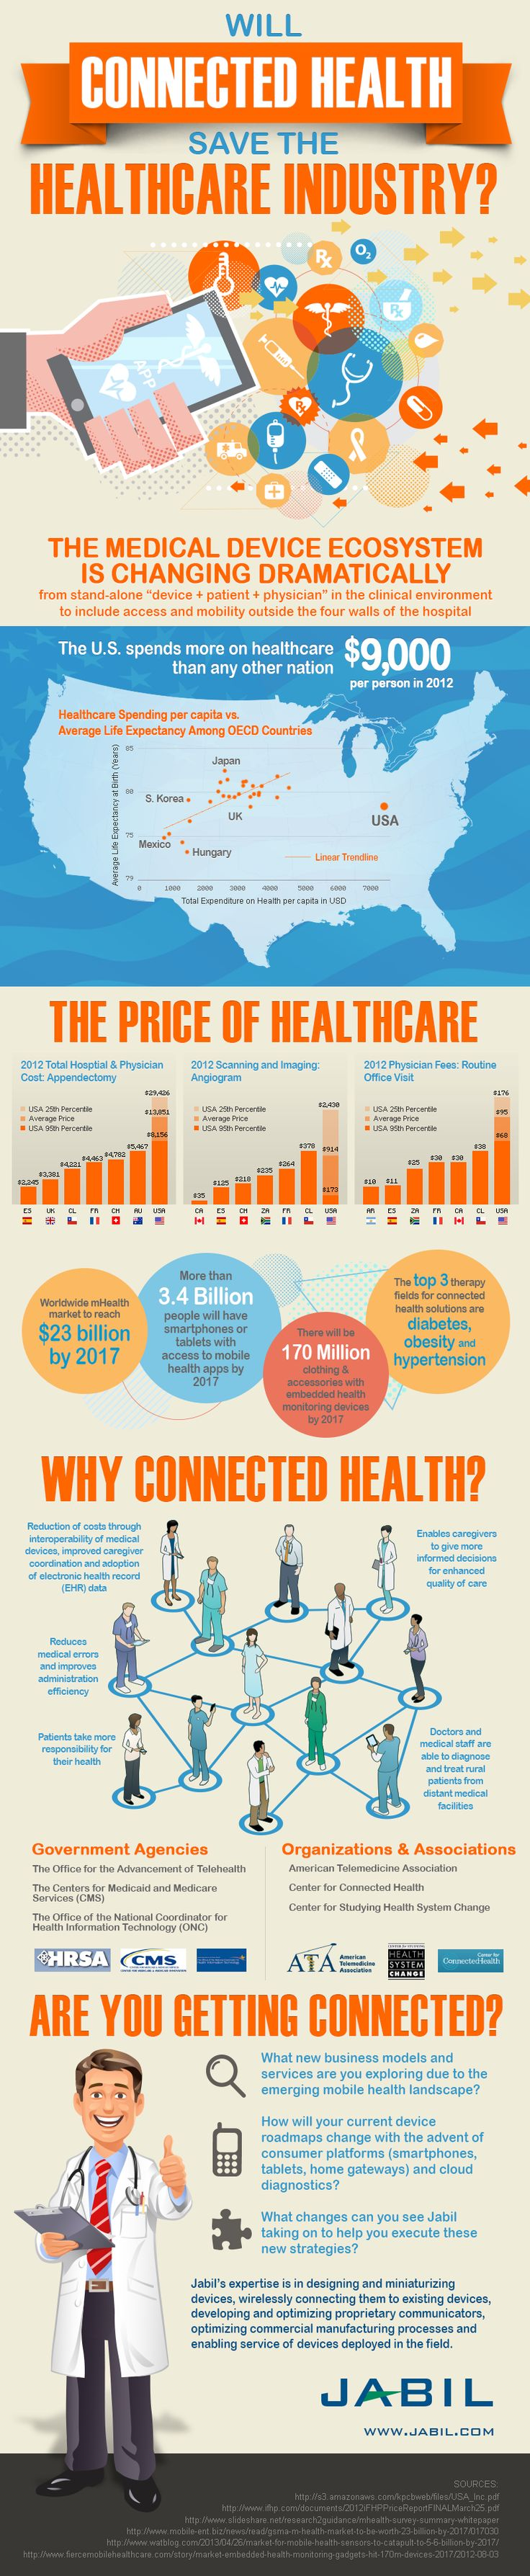 Infographic: Will Connected Health Save the Healthcare Industry?